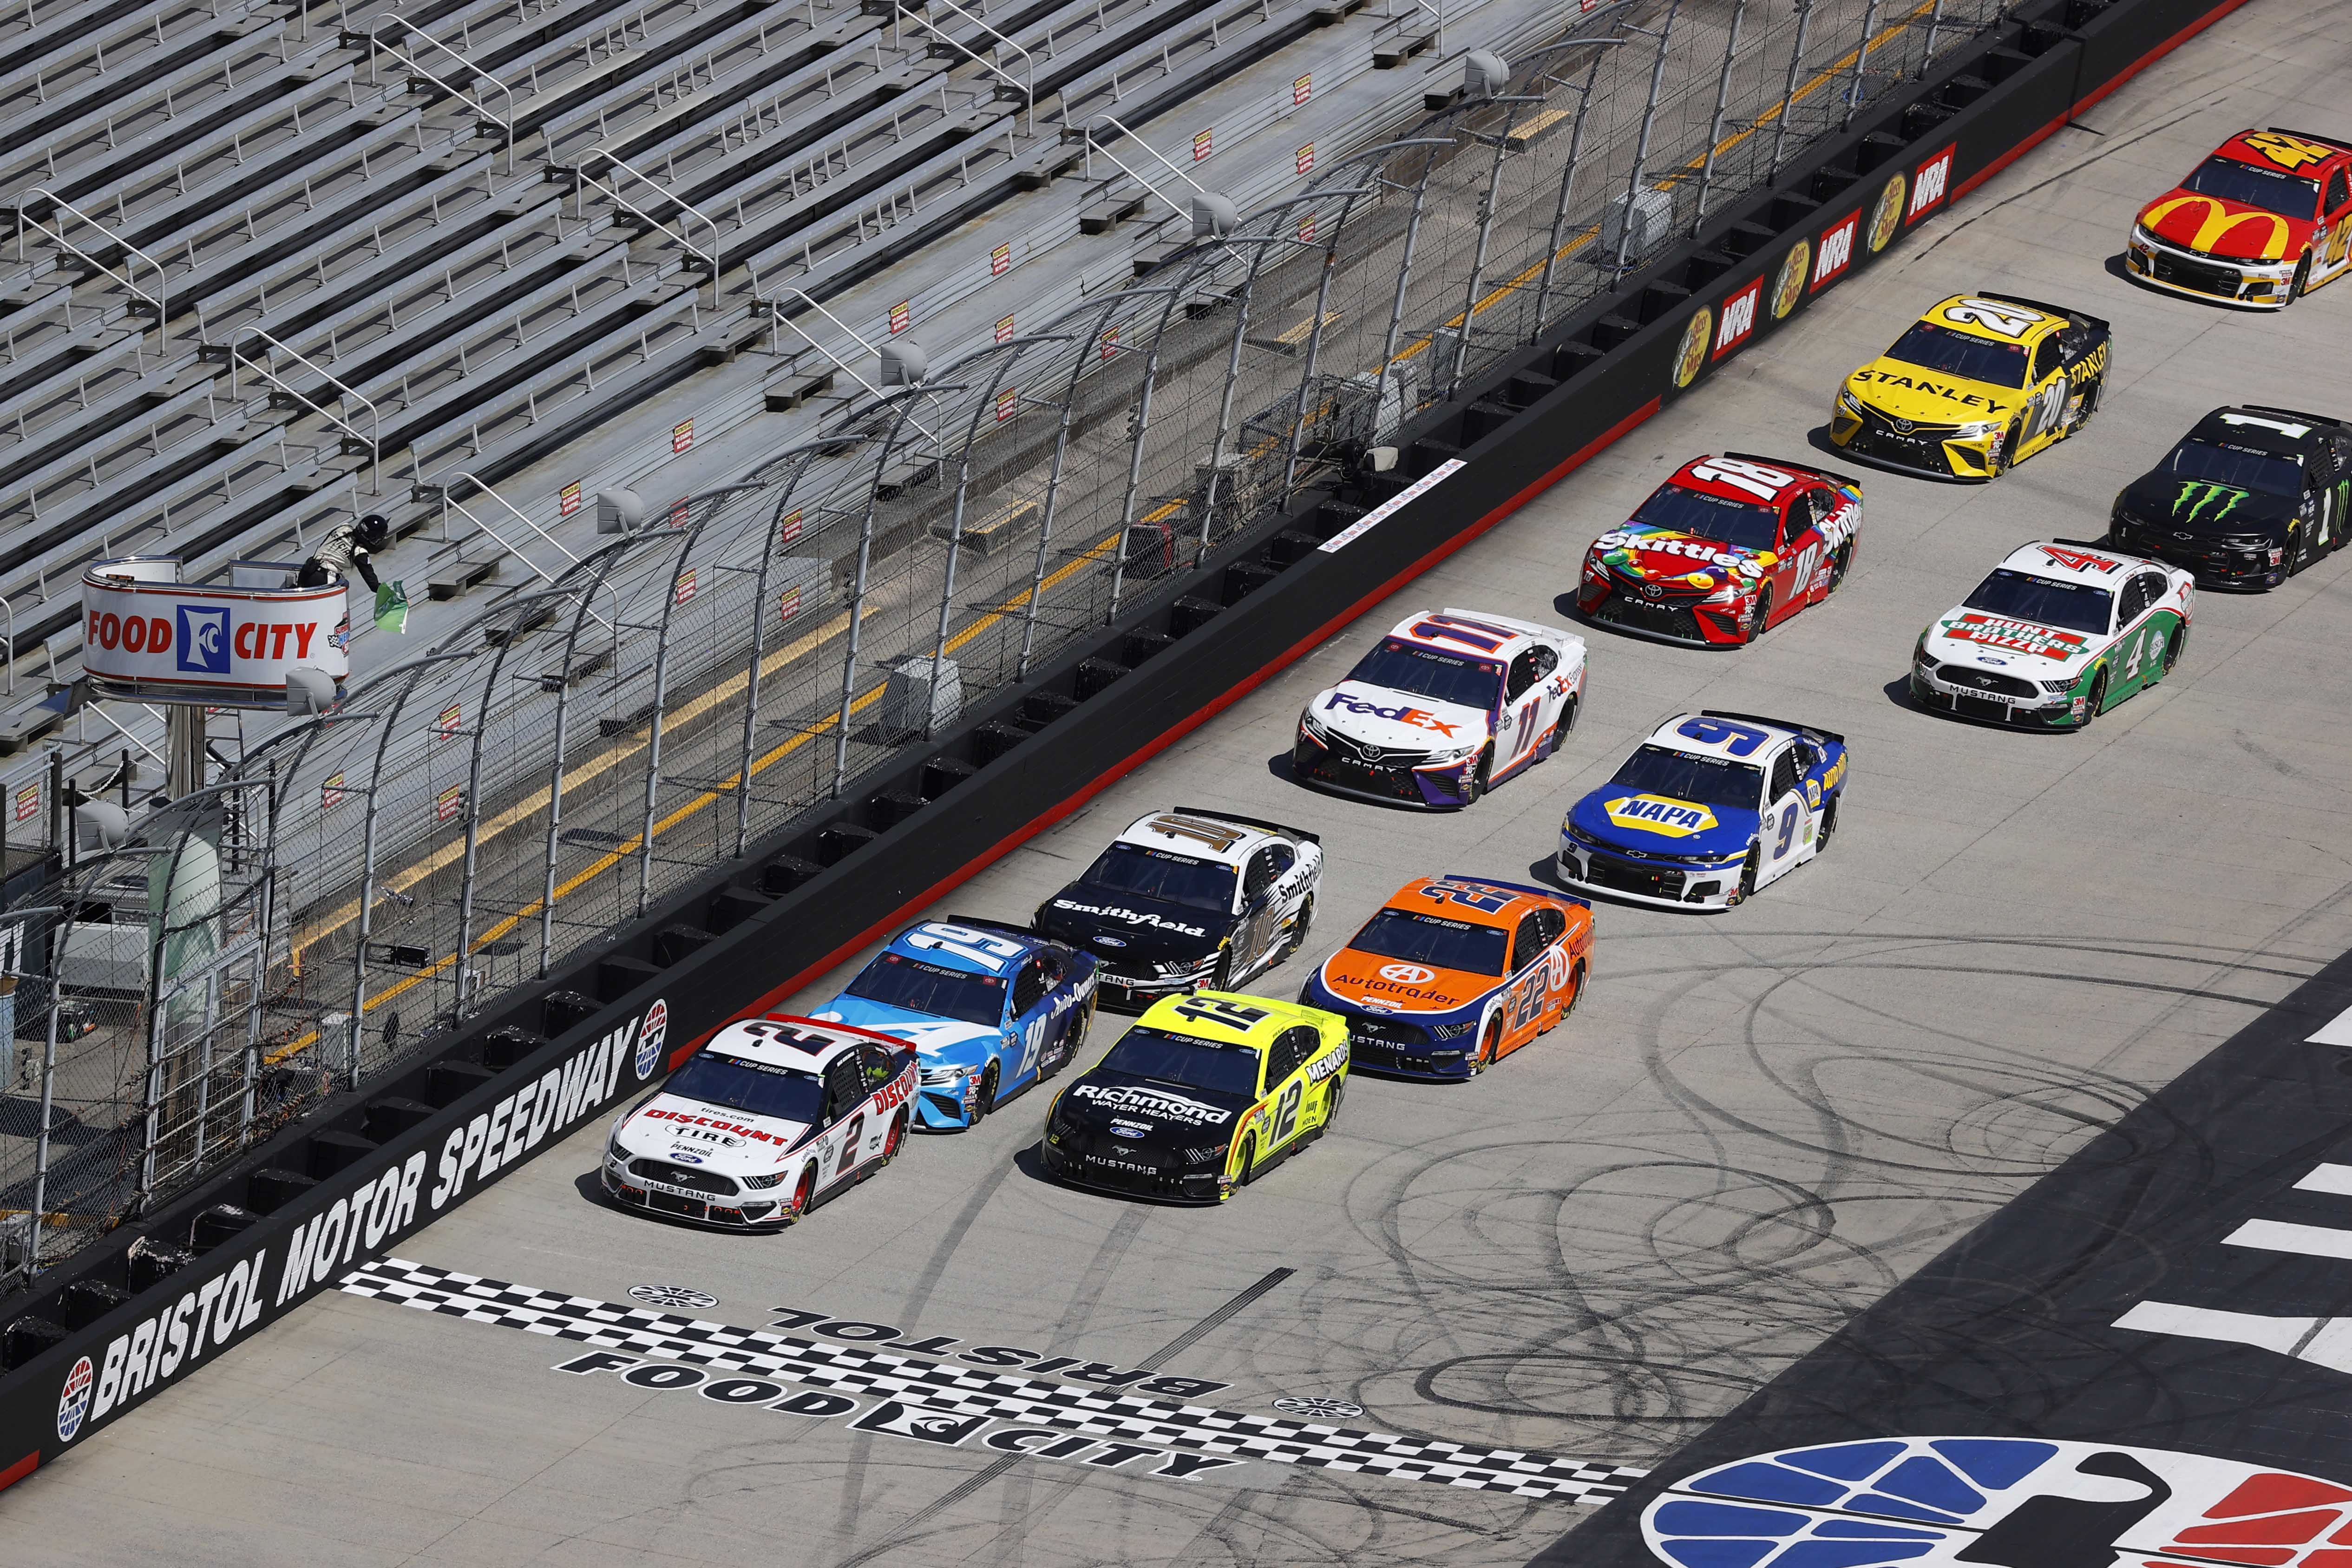 NASCAR Cup Series at Bristol Motor Speedway without fans